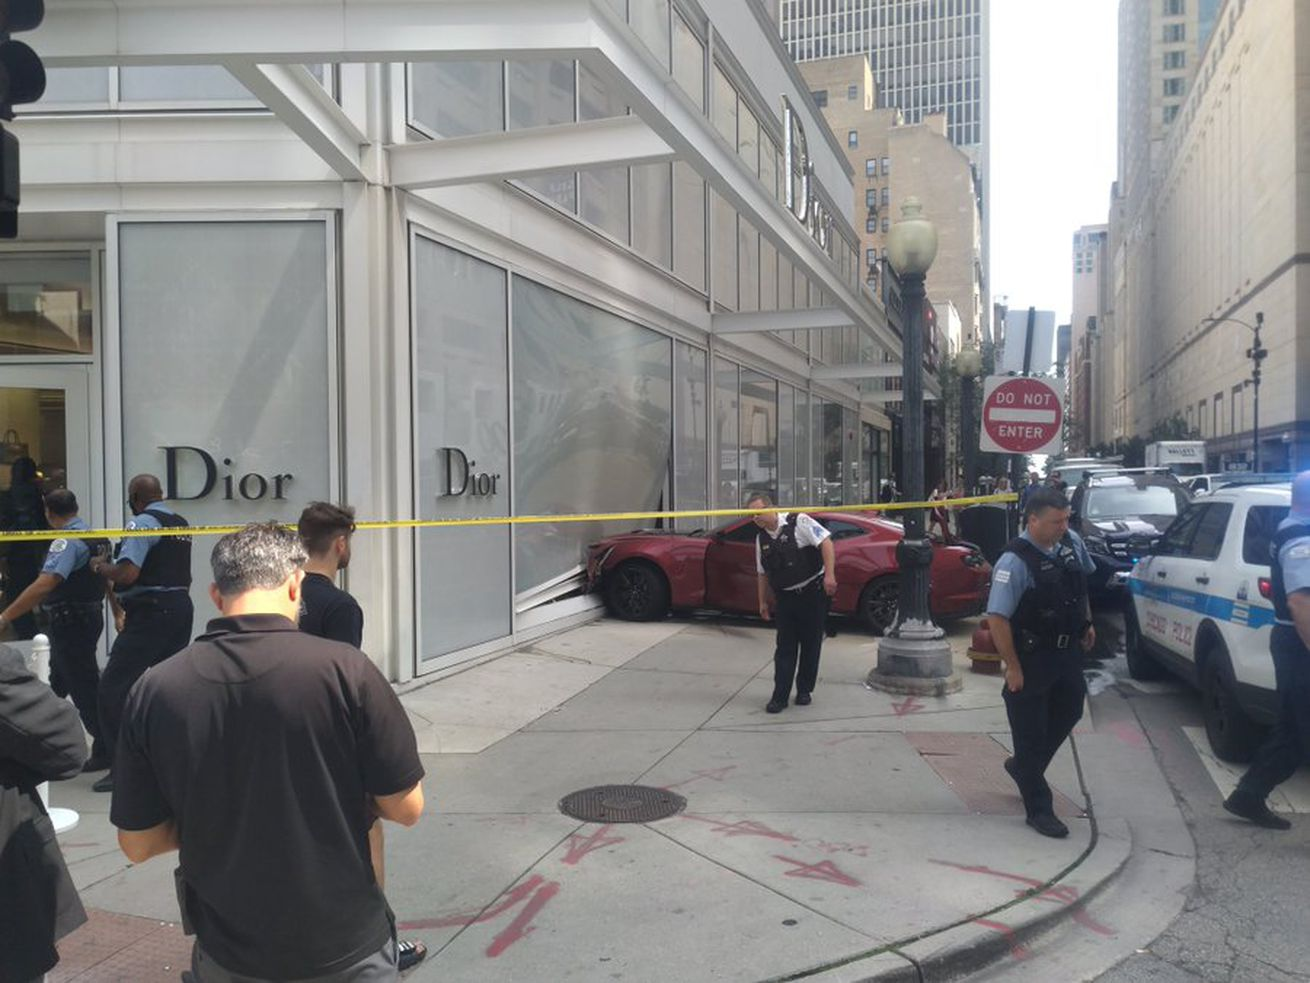 A driver crashed into a Dior store on Rush Street on Friday.